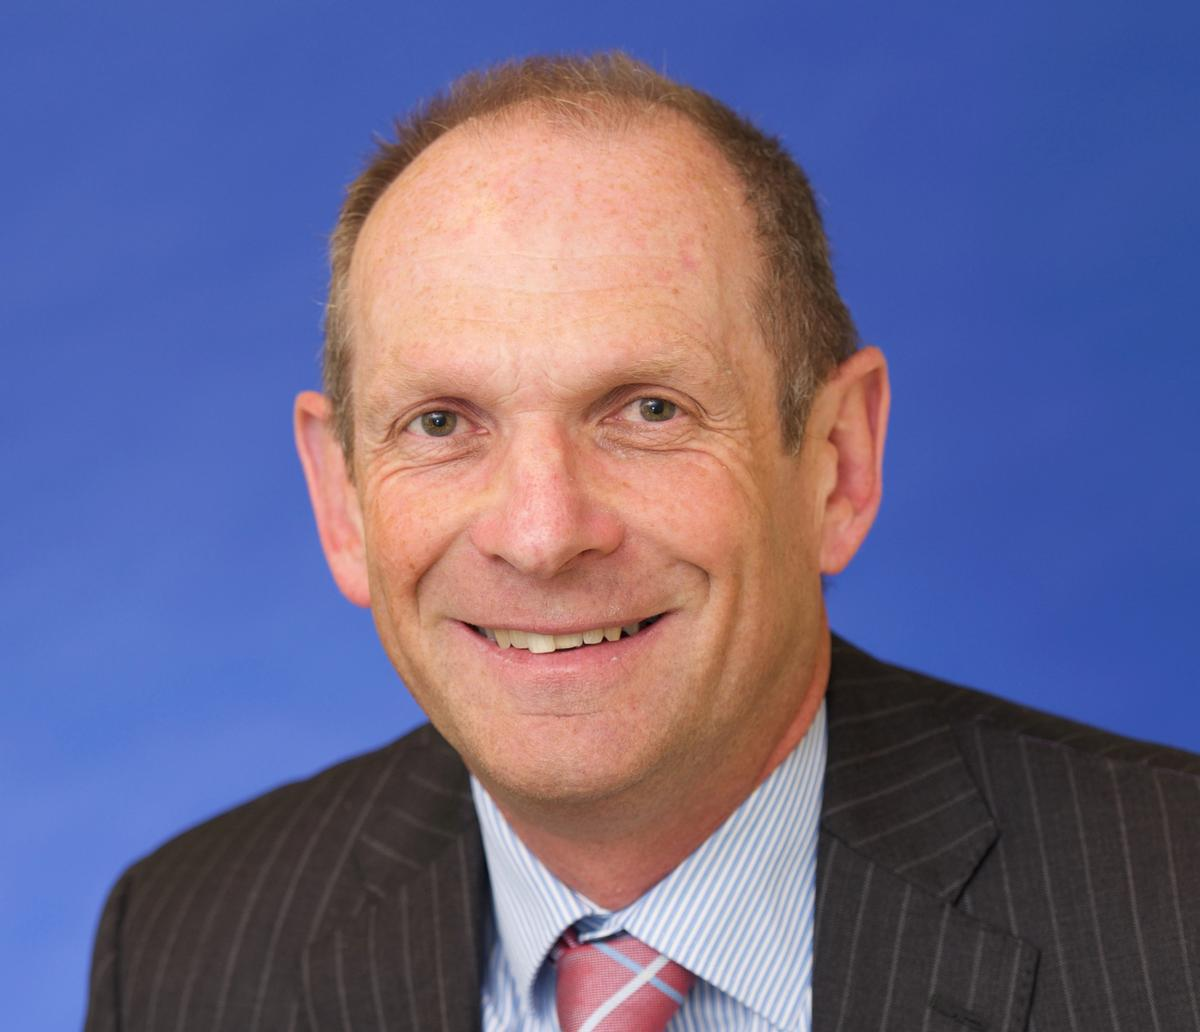 The newly-promoted John Bates brings more than 34 years of leisure industry experience to the board